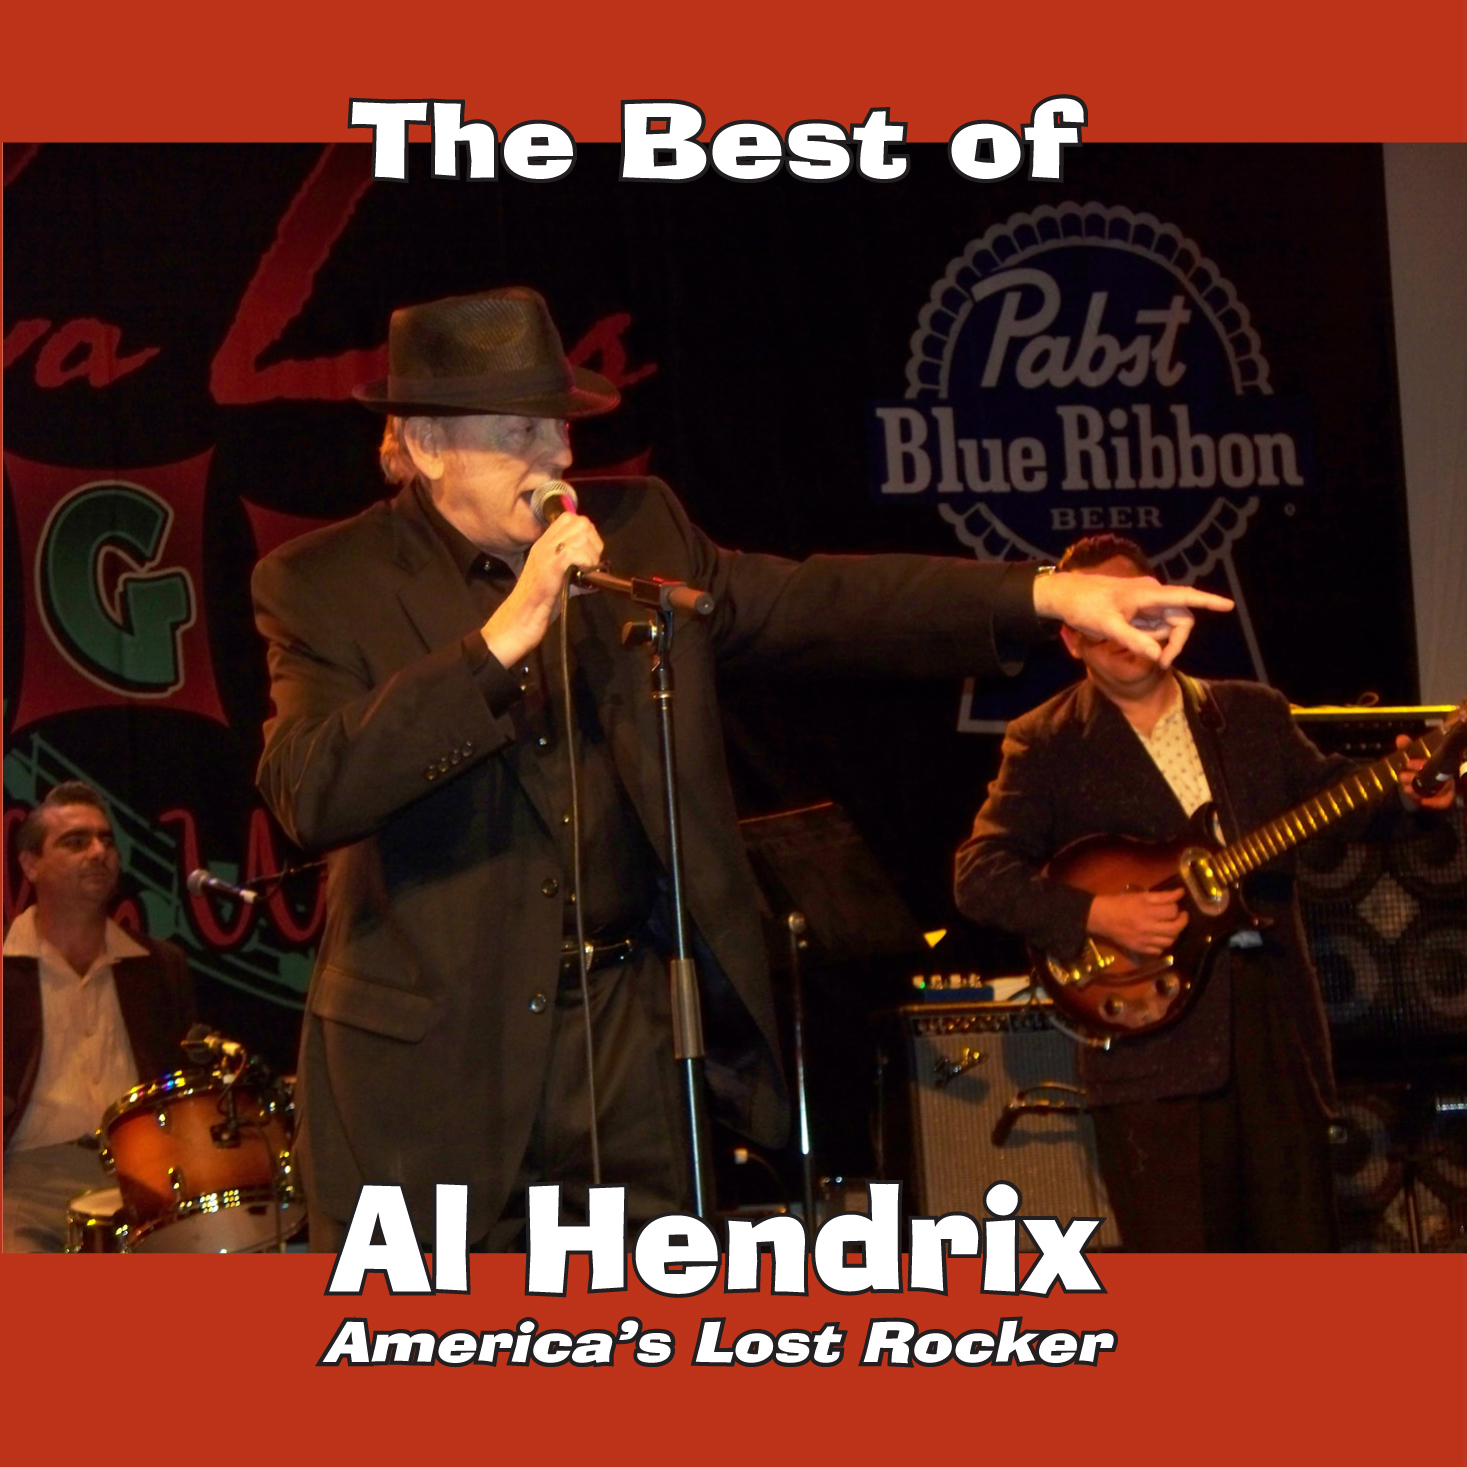 The Best of Al Hendrix cover RGB 1467